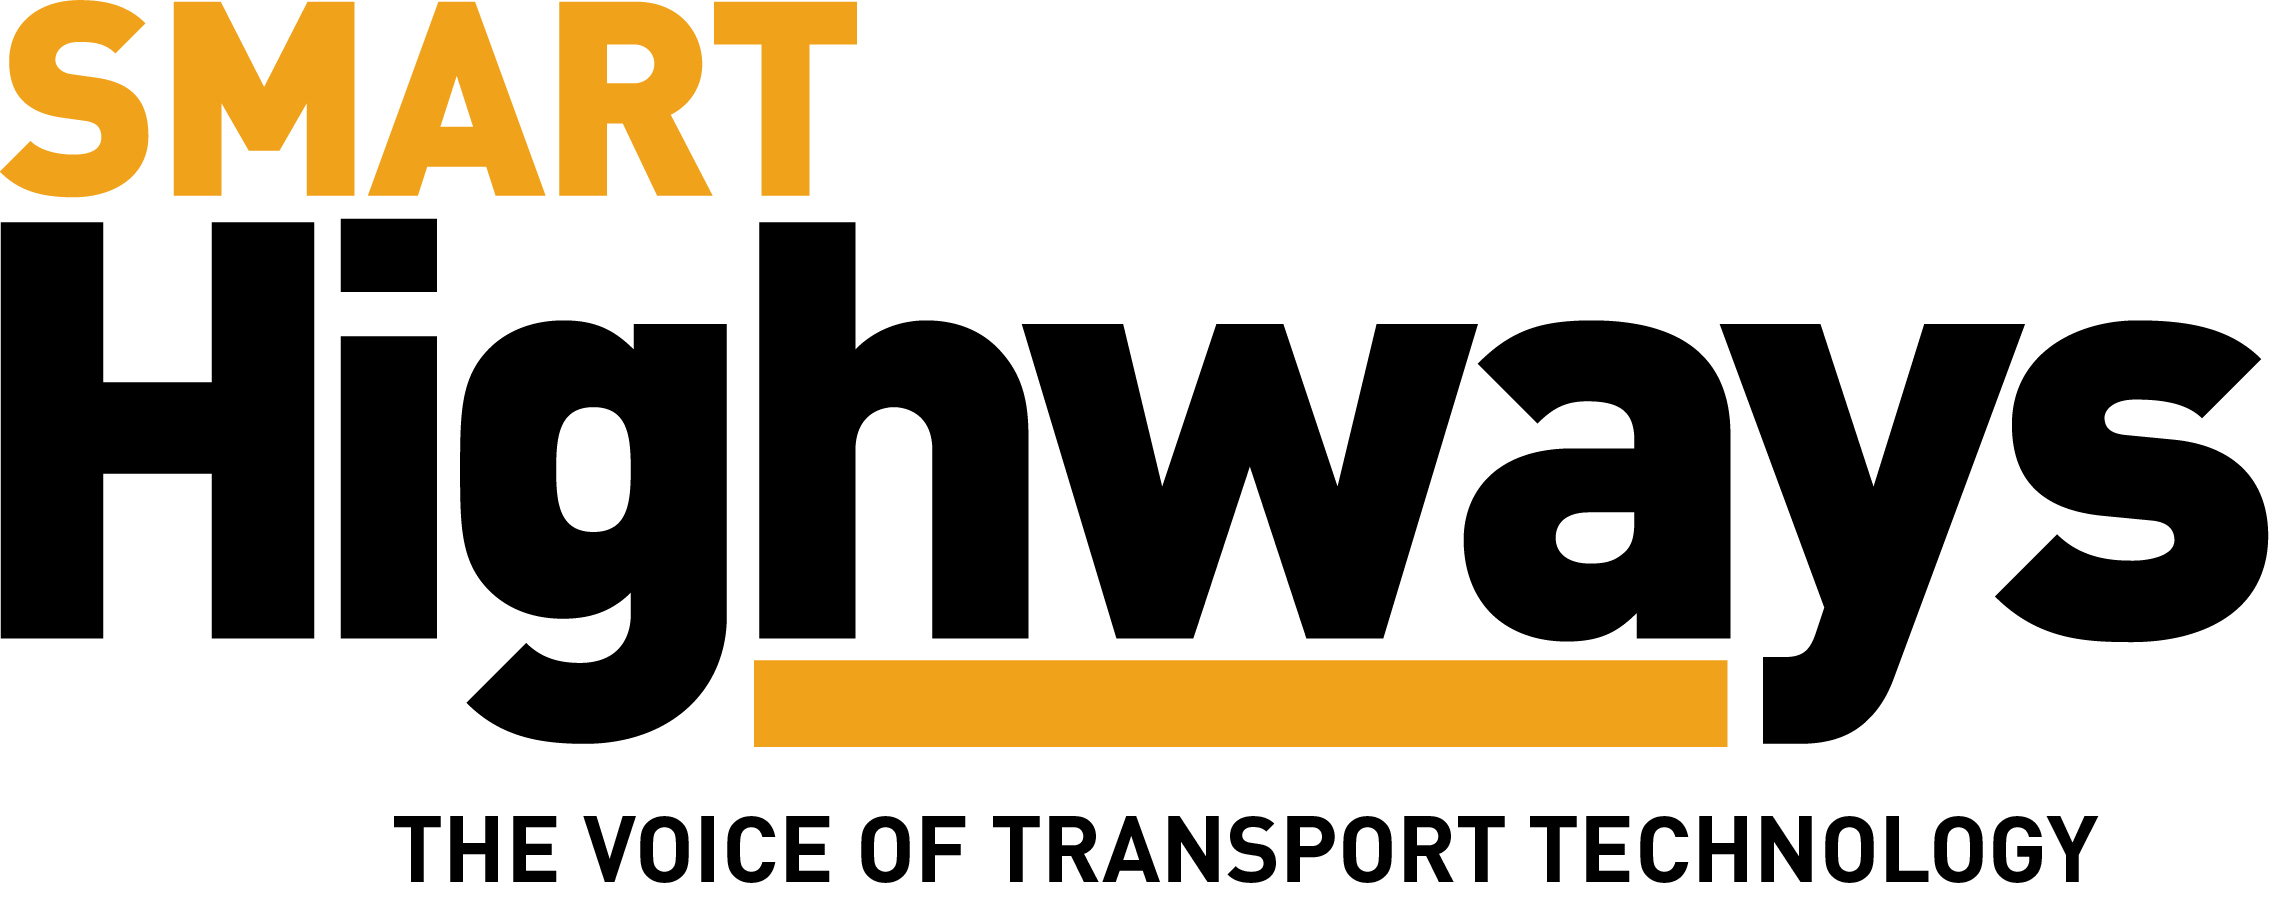 Smart Highways Magazine: Industry News